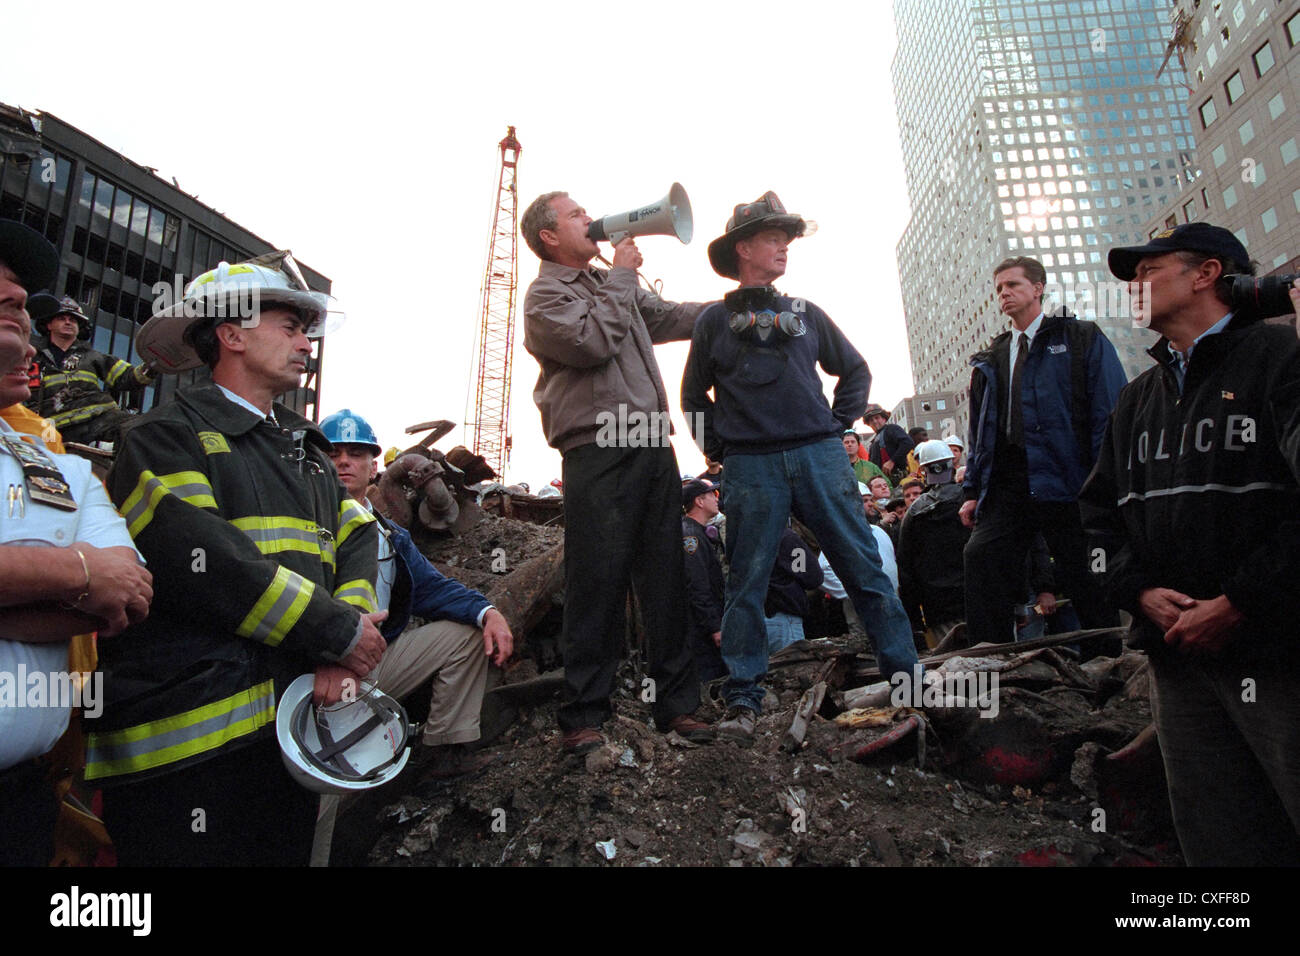 US President George W. Bush standing atop rubble from the destroyed World Trade Center addresses rescue workers - Stock Image